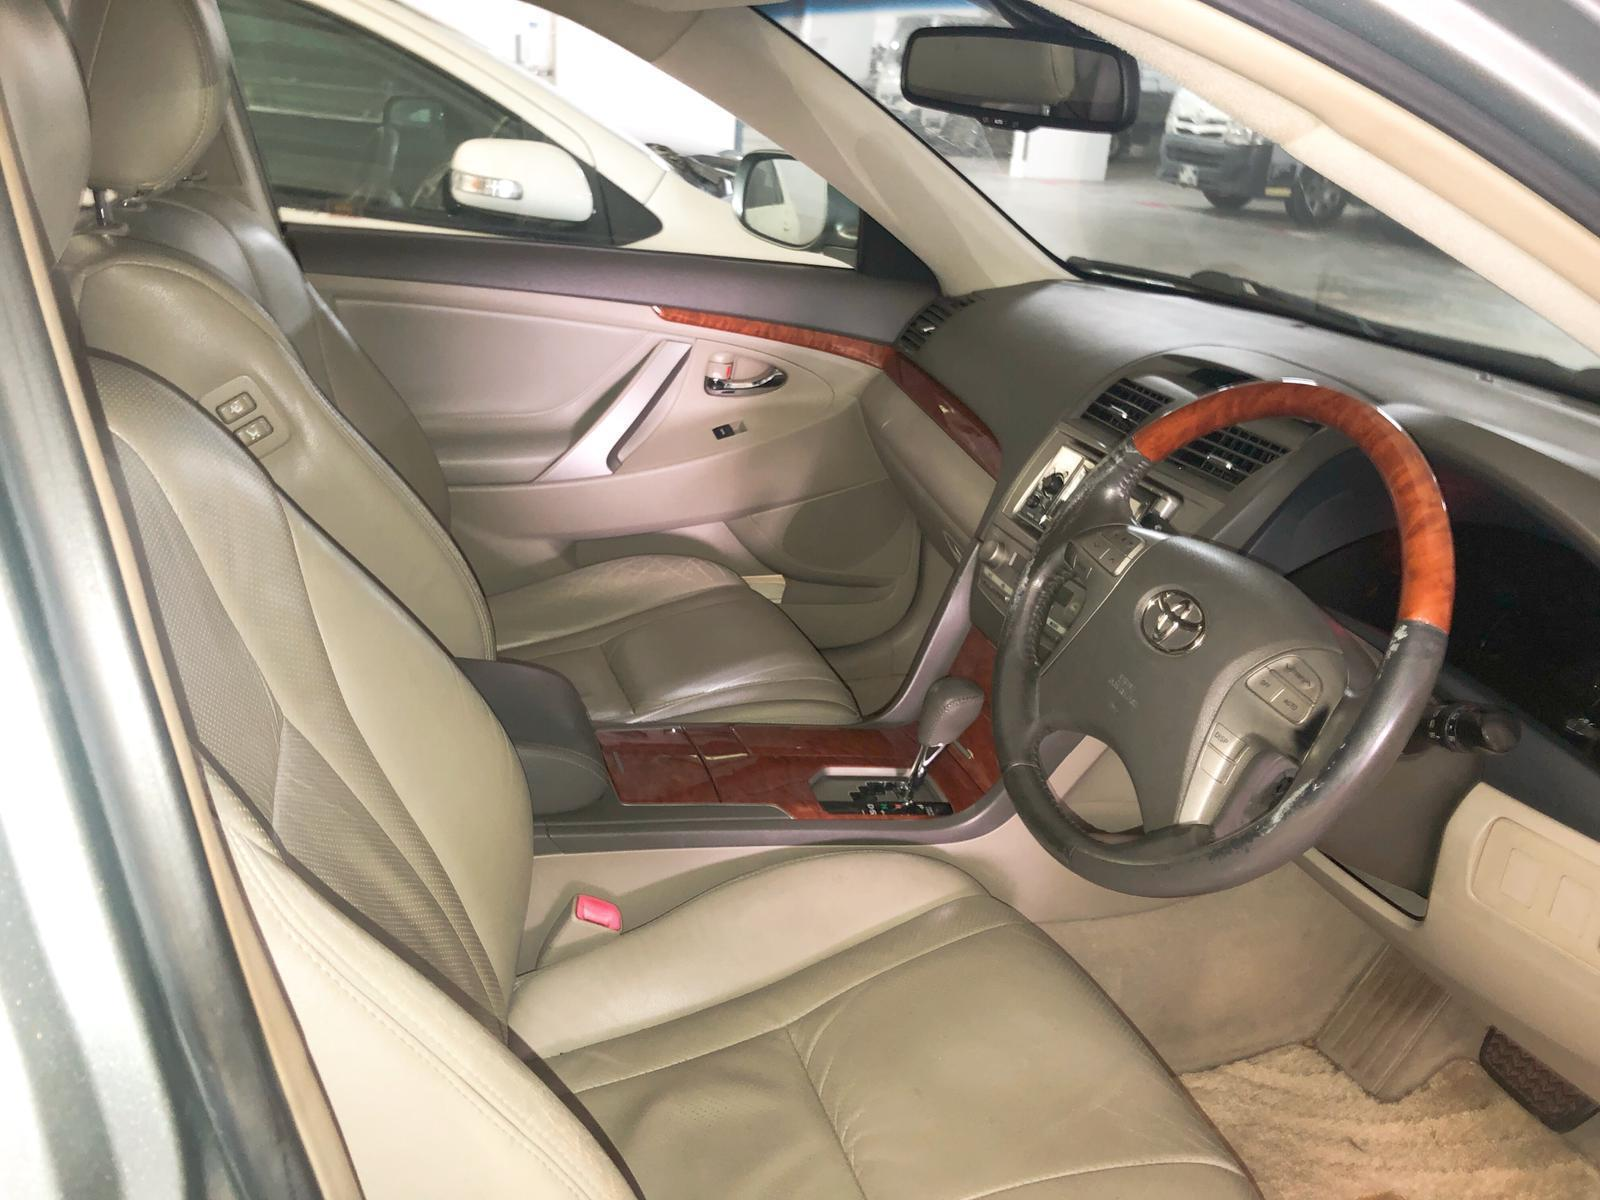 Toyota Camry PROMOTIONAL RENTAL RATES FOR Grab/Ryde/Personal